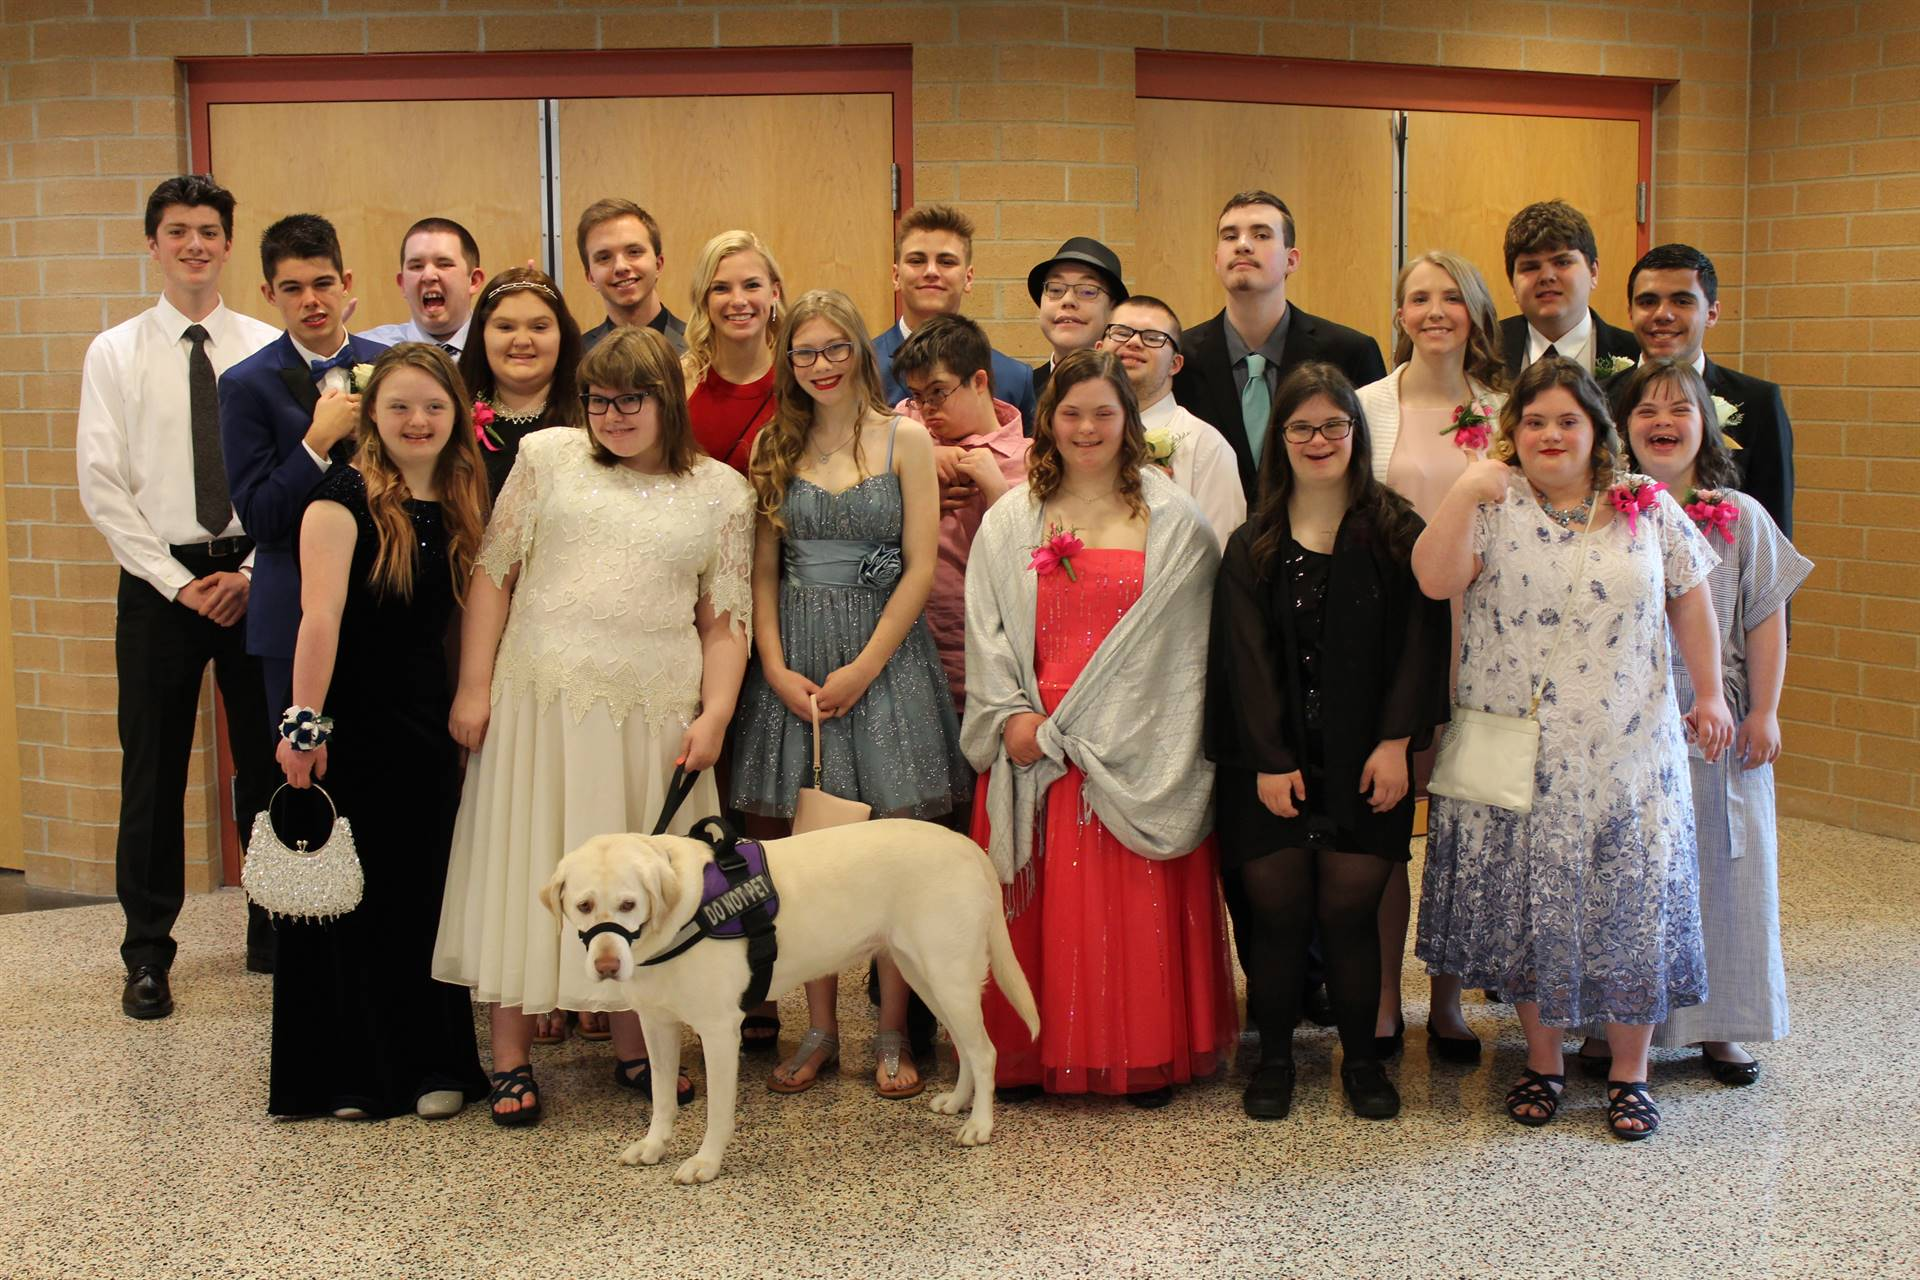 The S.T.A.R.S. Prom Attendees